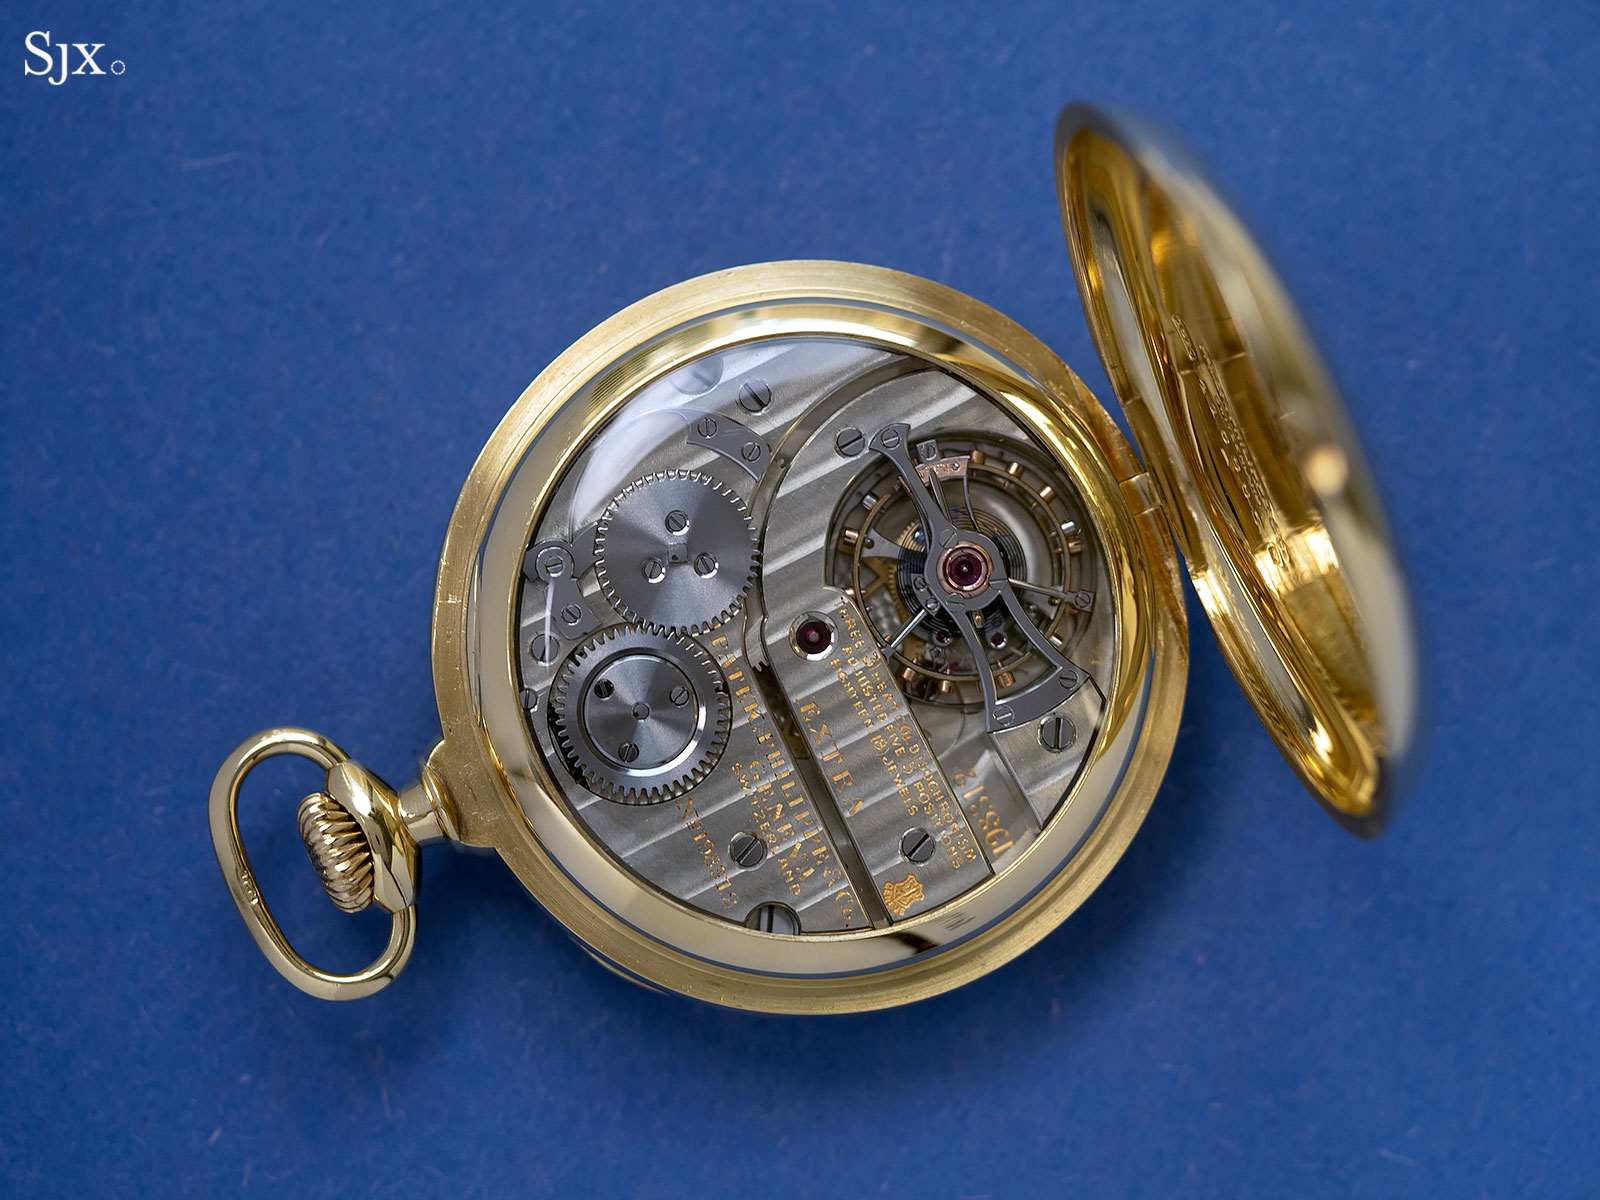 patek observatory tourbillon pocket watch 198312 6